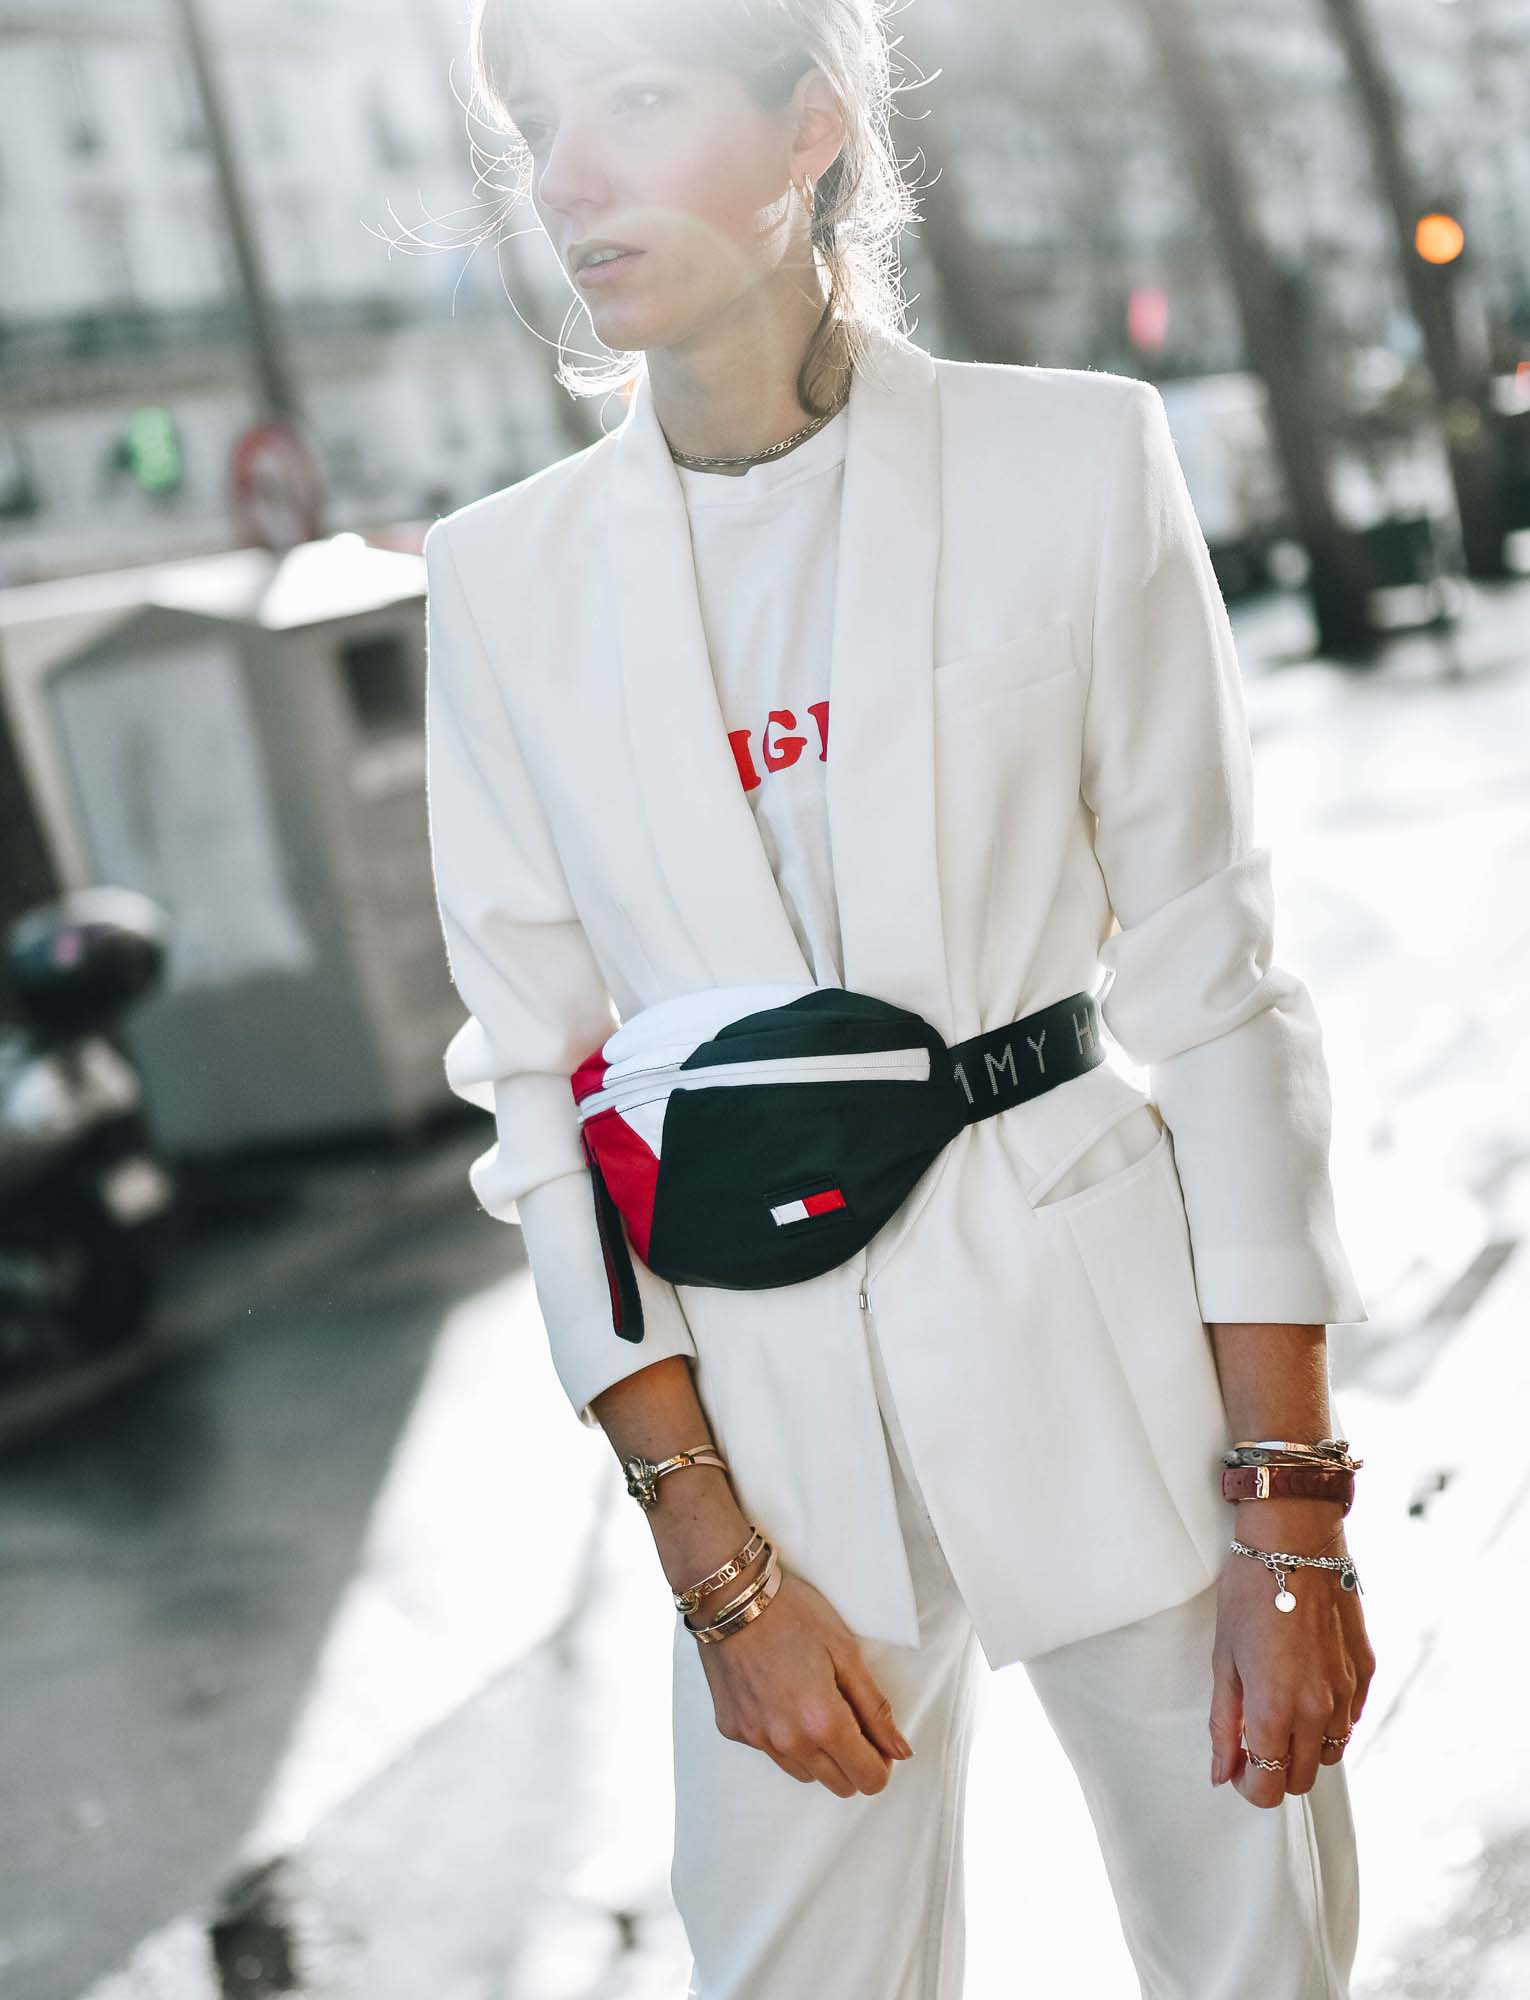 This €30 Zara bag is a dead ringer for a very popular Gucci one